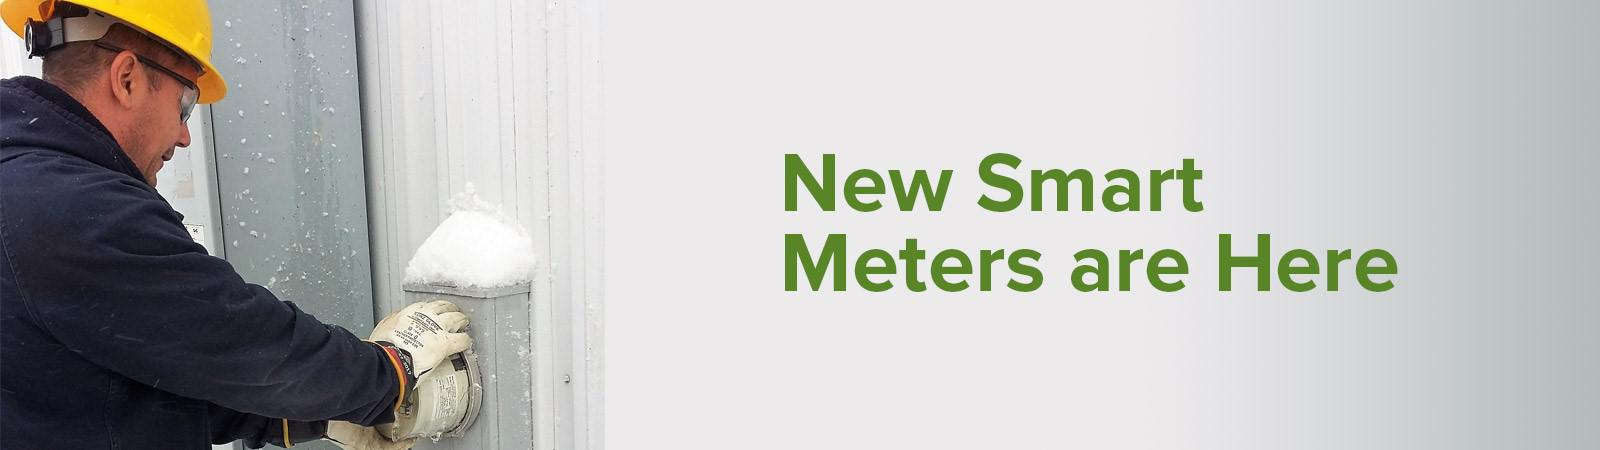 "Meter technician replacing a home's meter with text ""New Smart Meters are Here"""